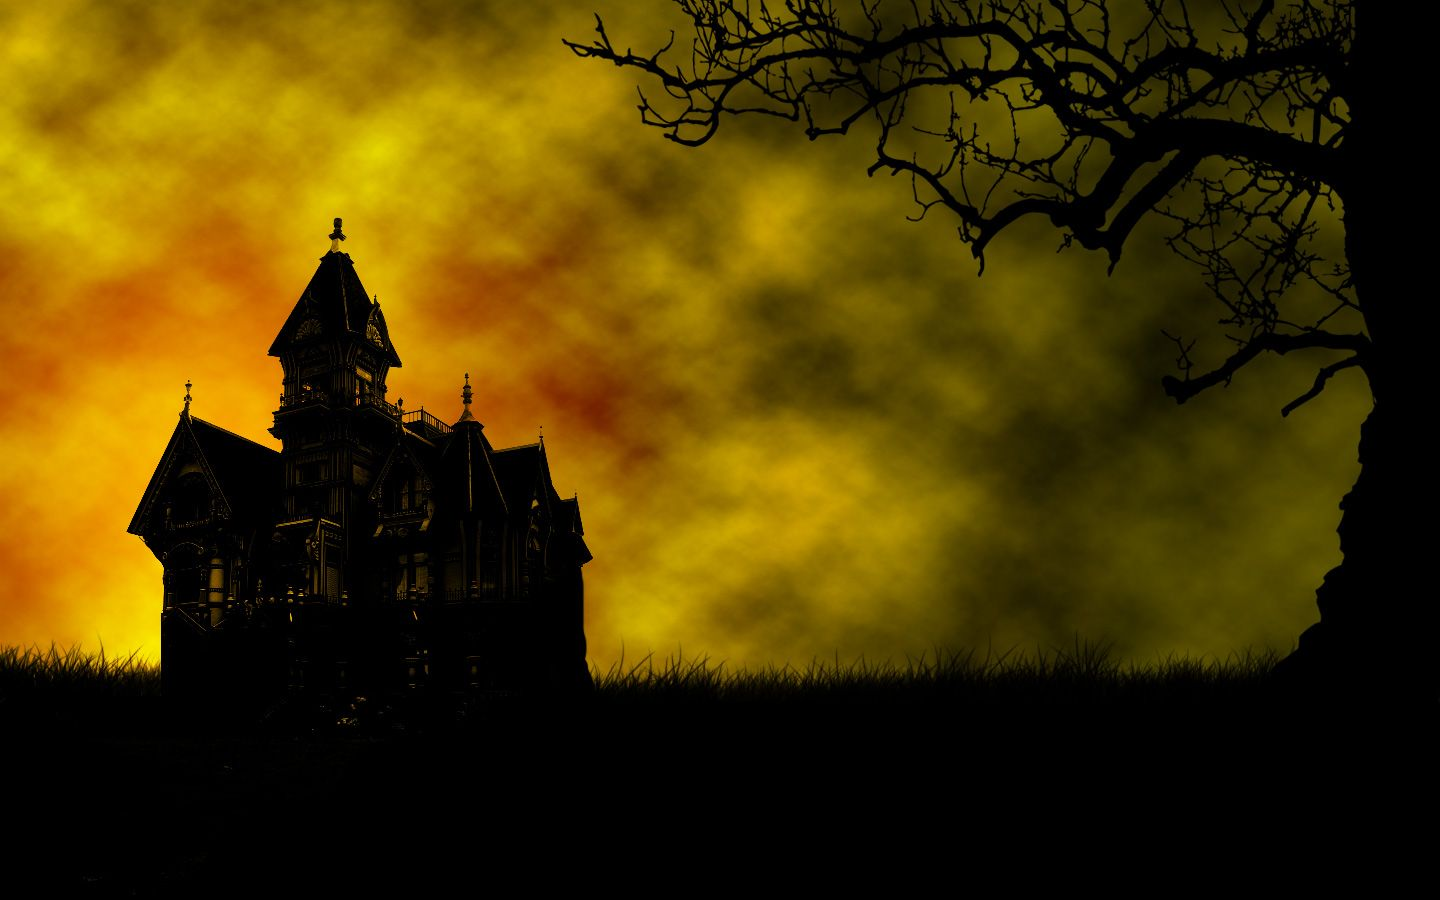 halloween halloween wallpapers halloween myspace backgrounds free halloween - Halloween Background Images Free